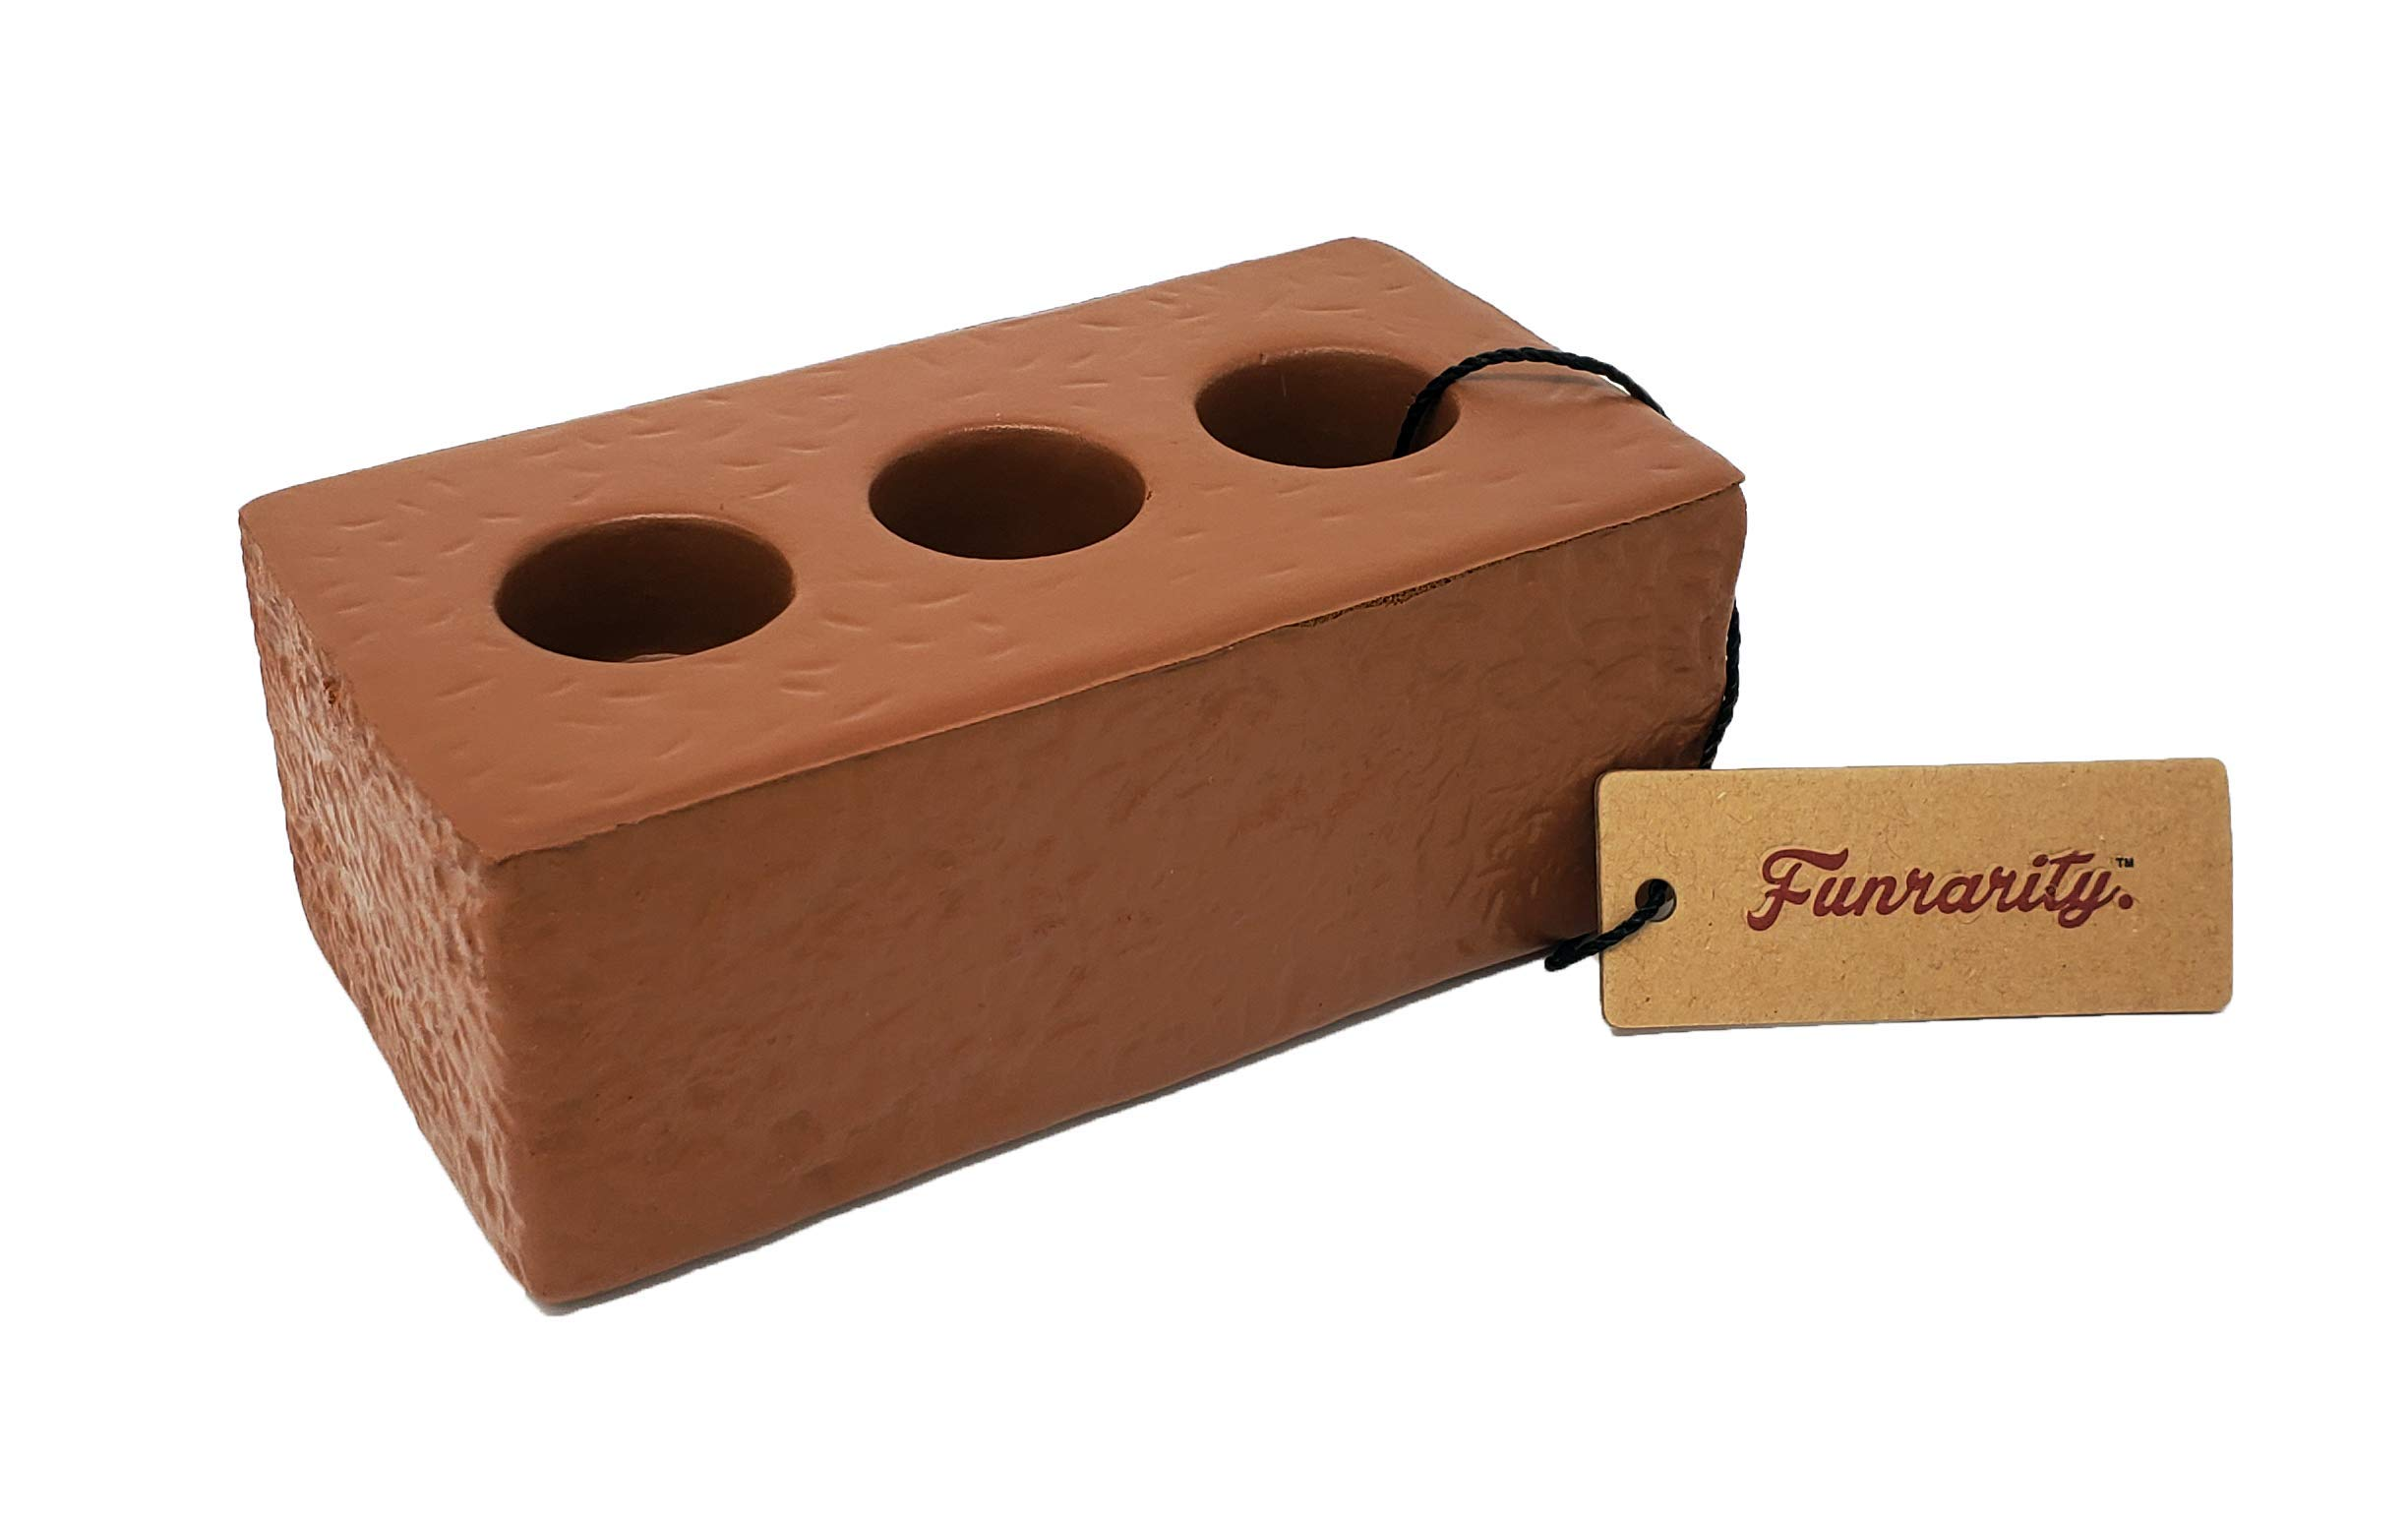 Funrarity Squeezy Squeezable Brick Stress Toy